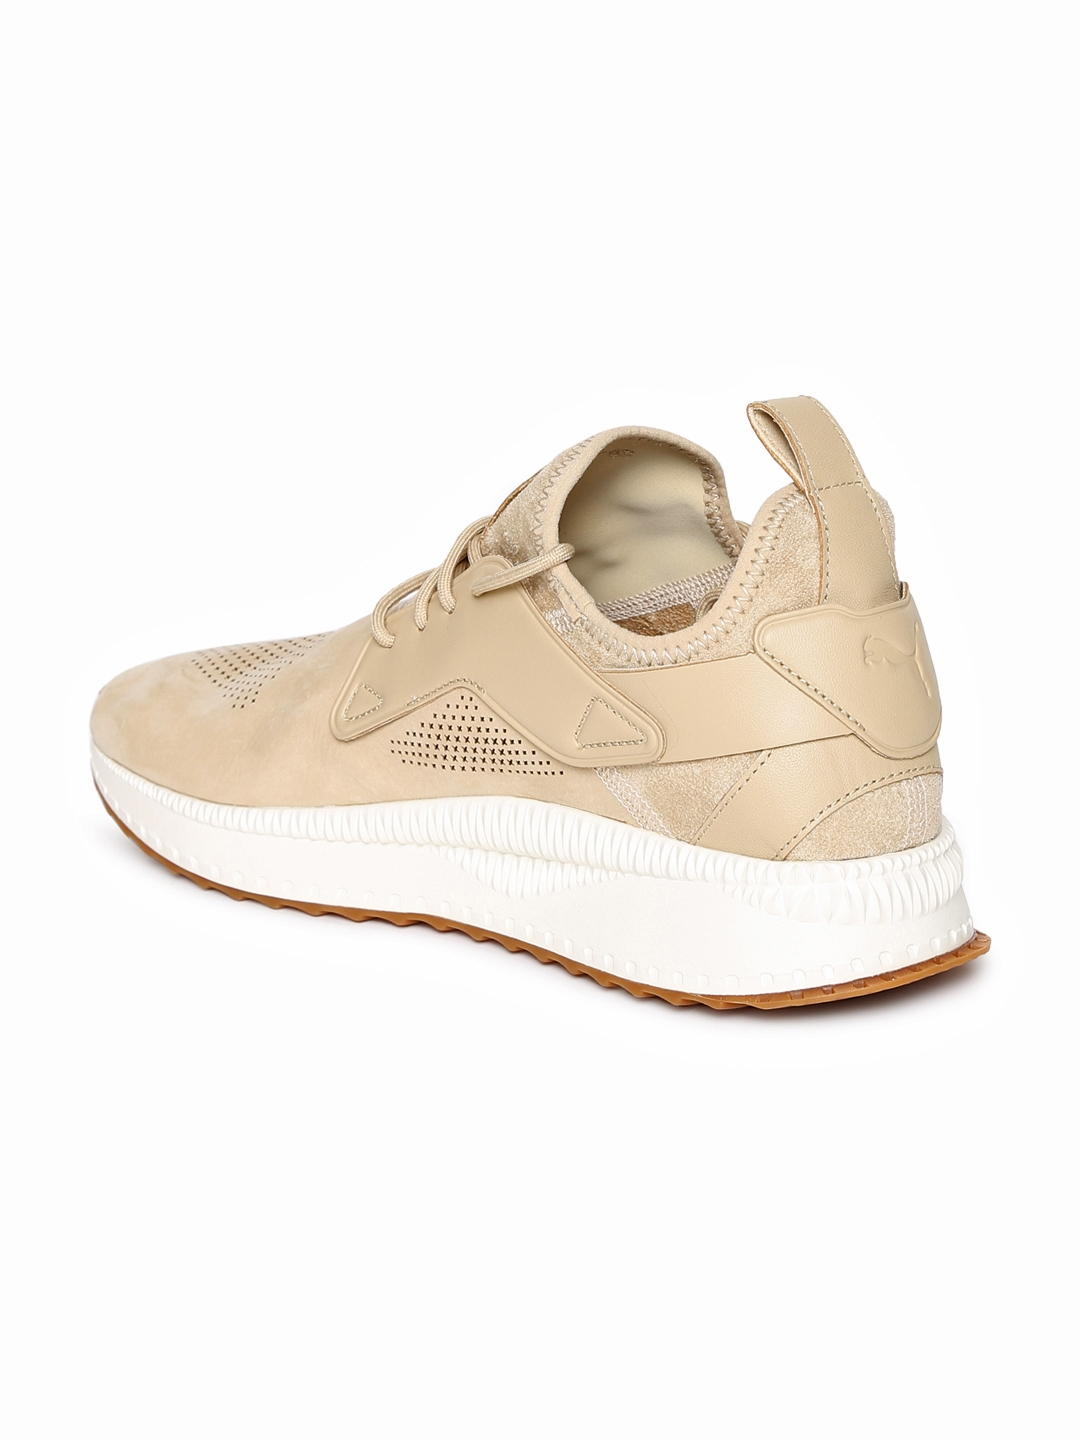 17fe472d615 Buy Puma Men Peach   White TSUGI Cage Roasted Sneakers - Casual ...